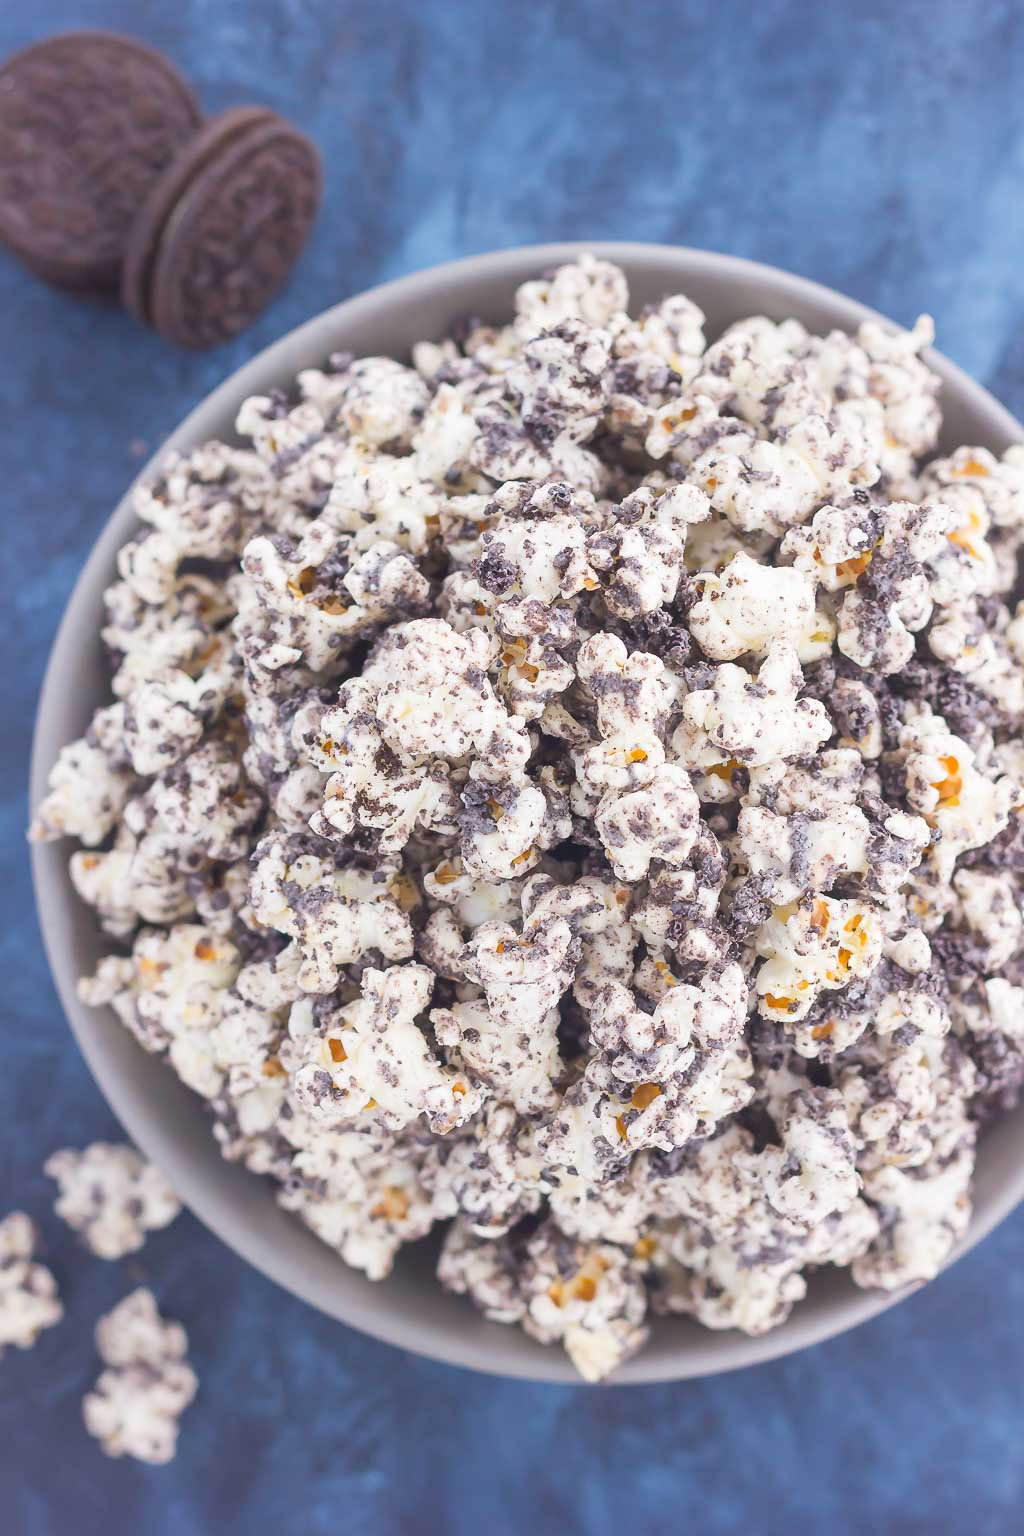 Overhead view of an overflowing bowl of Oreo popcorn.